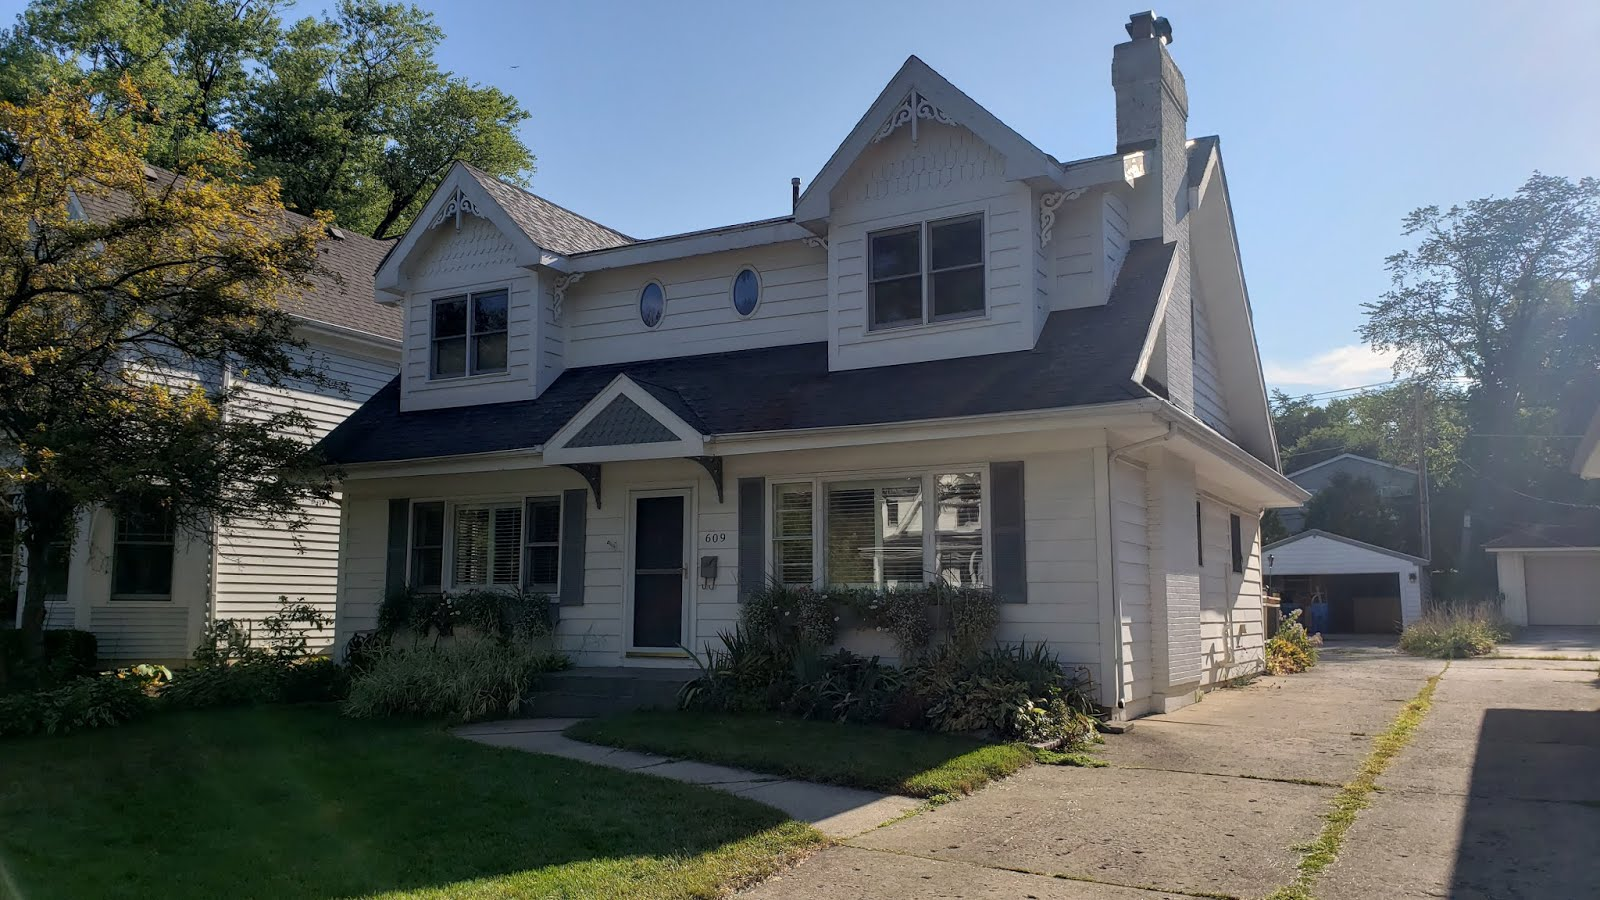 Sold! Hinsdale house